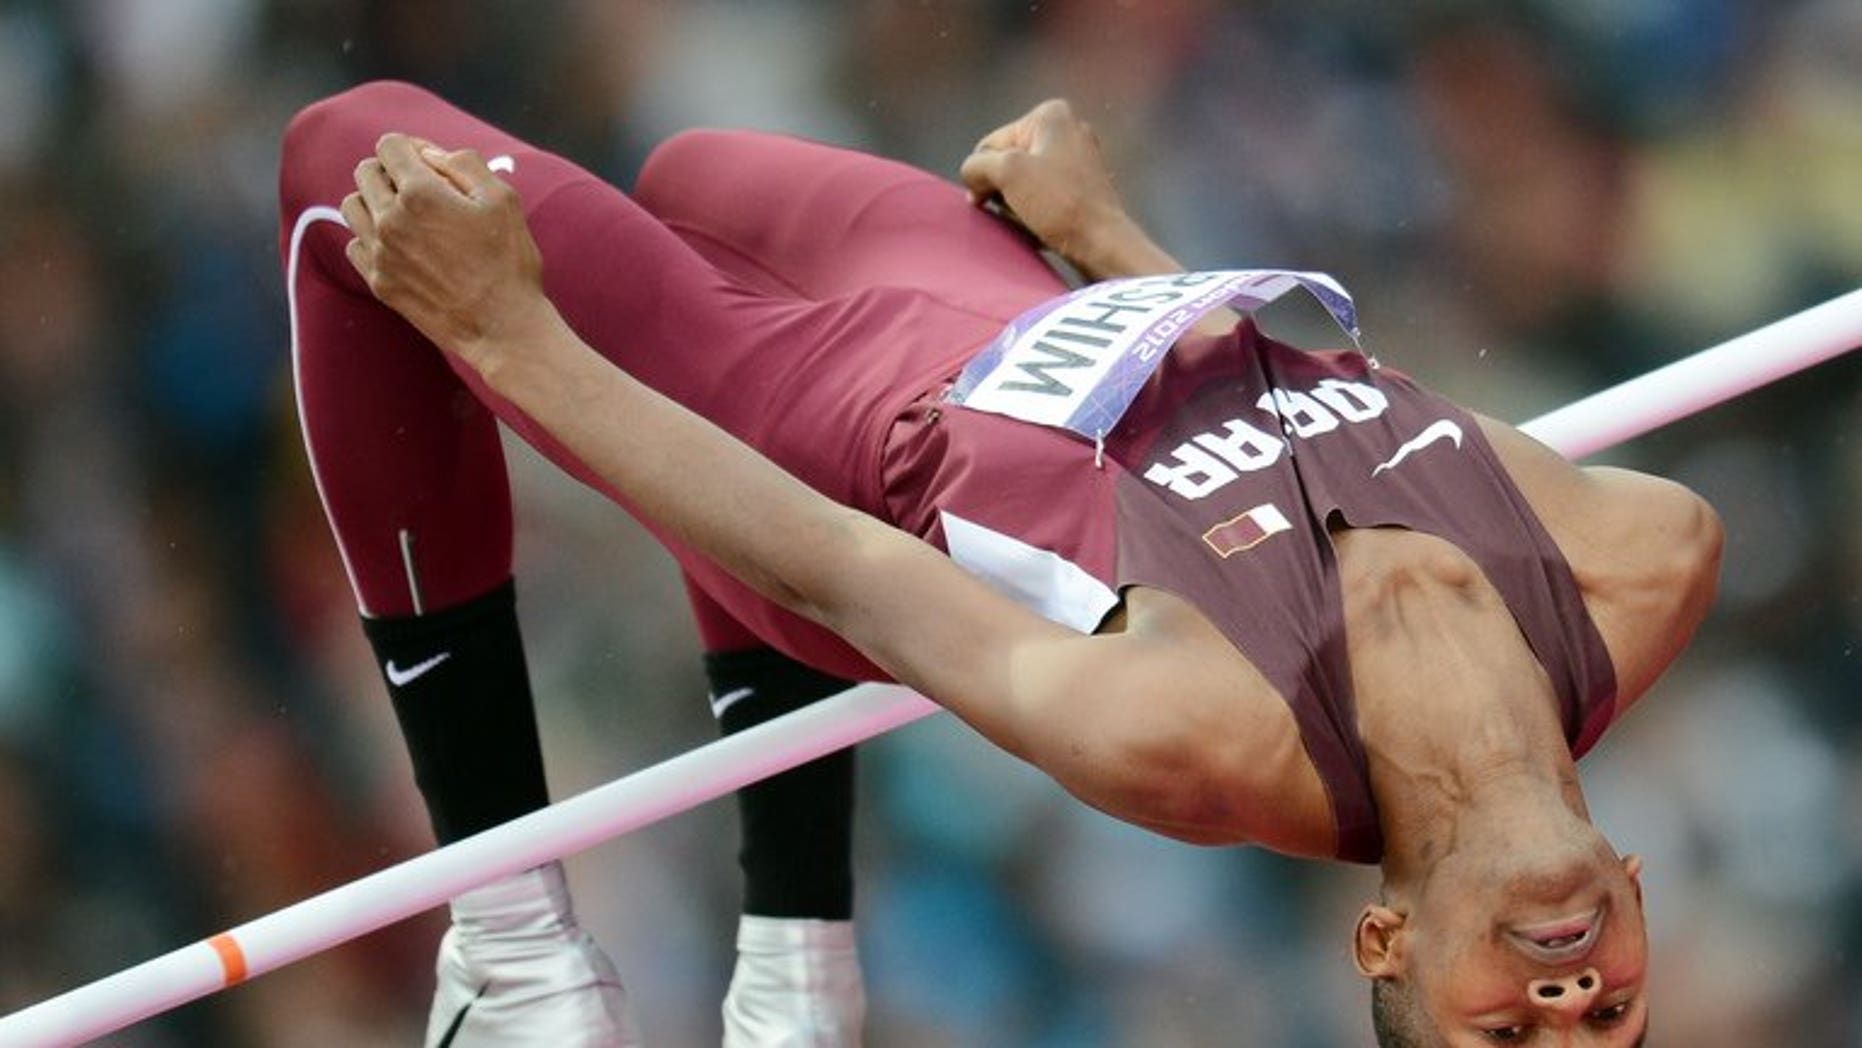 Qatar's Mutaz Essa Barshim in action at the London Olympics on August 7, 2012. He has withdrawn from the Asian athletics championships, robbing the already depleted event in India of its star attraction.